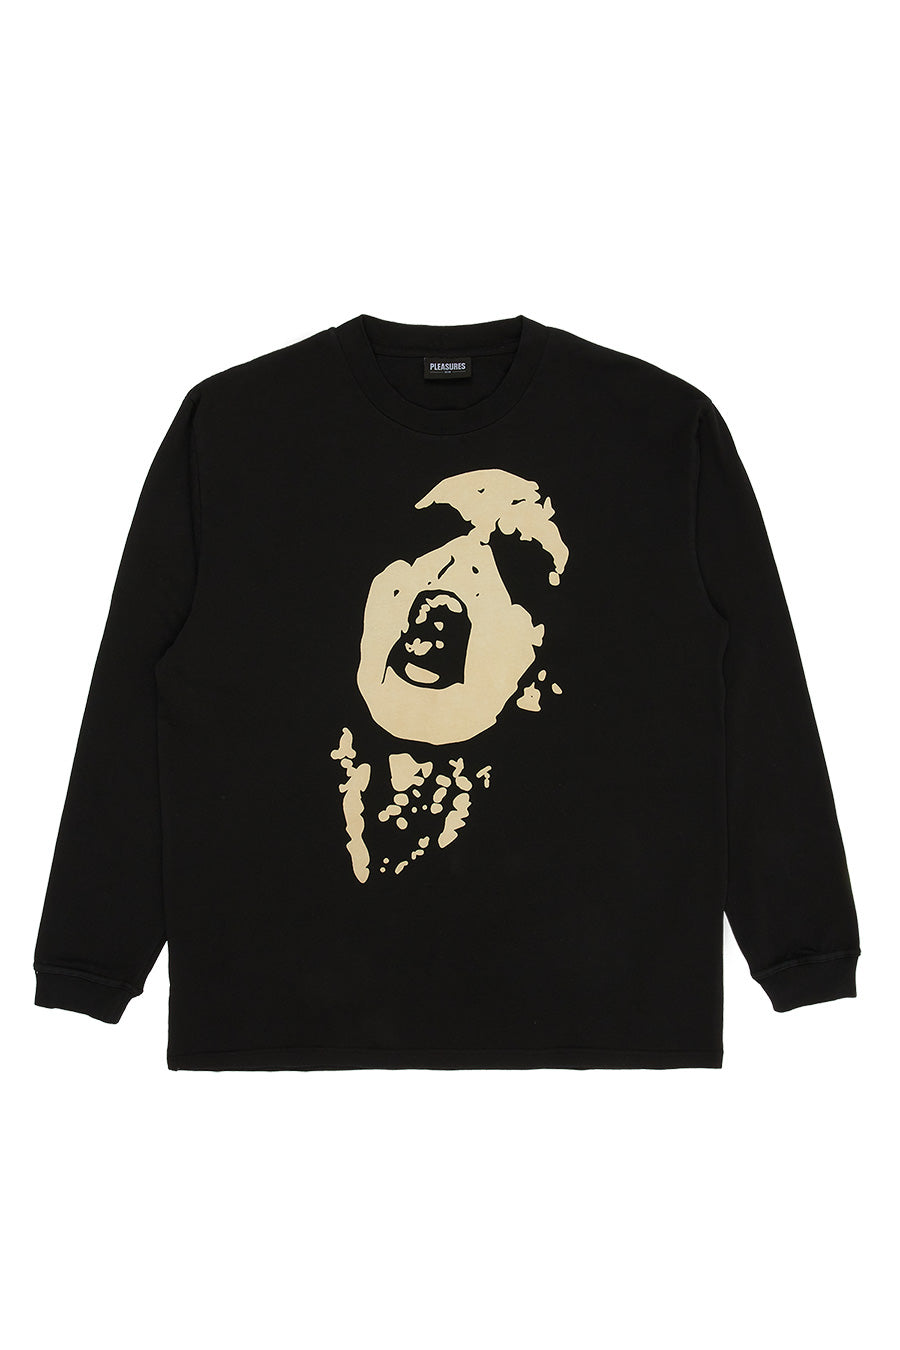 Pleasures - Black Shout Heavyweight Long Sleeve T-Shirt | 1032 SPACE